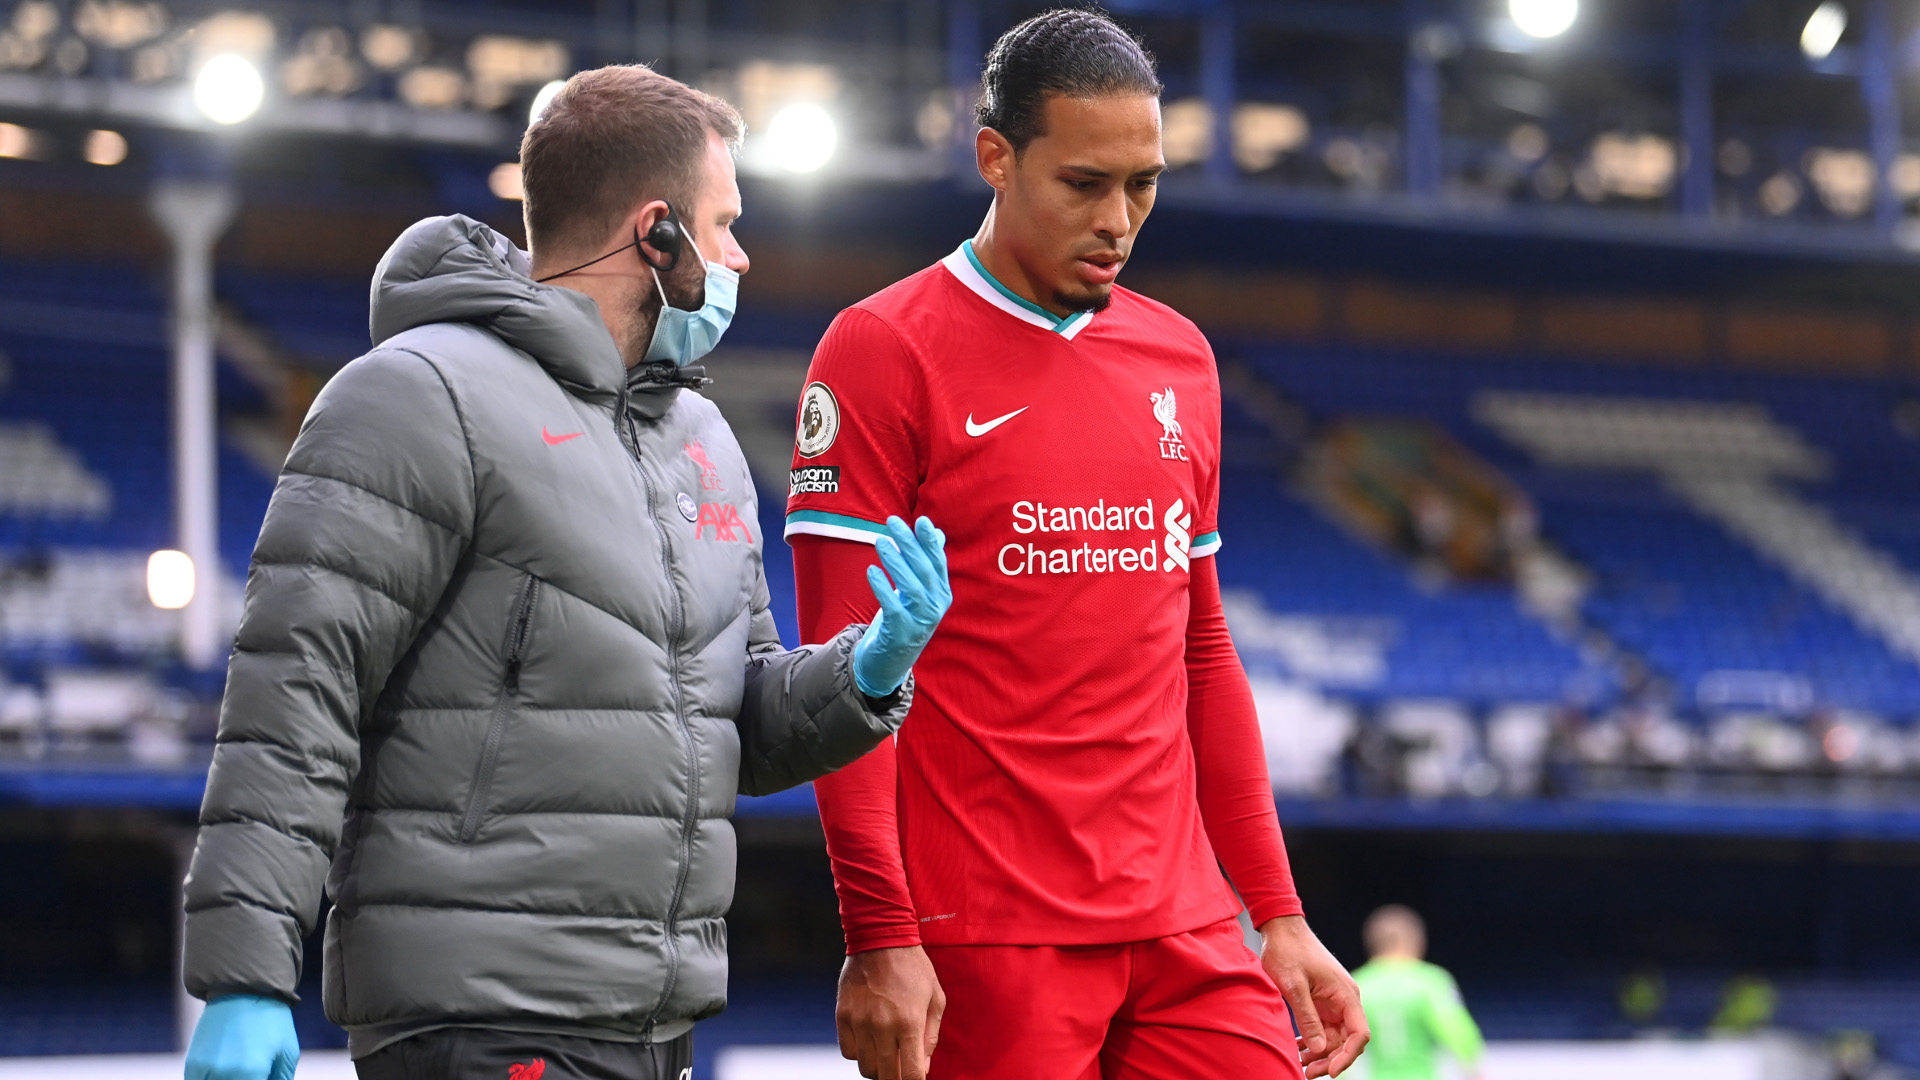 His knee does not look like a knee should – Klopp provides update on Van Dijk's recovery